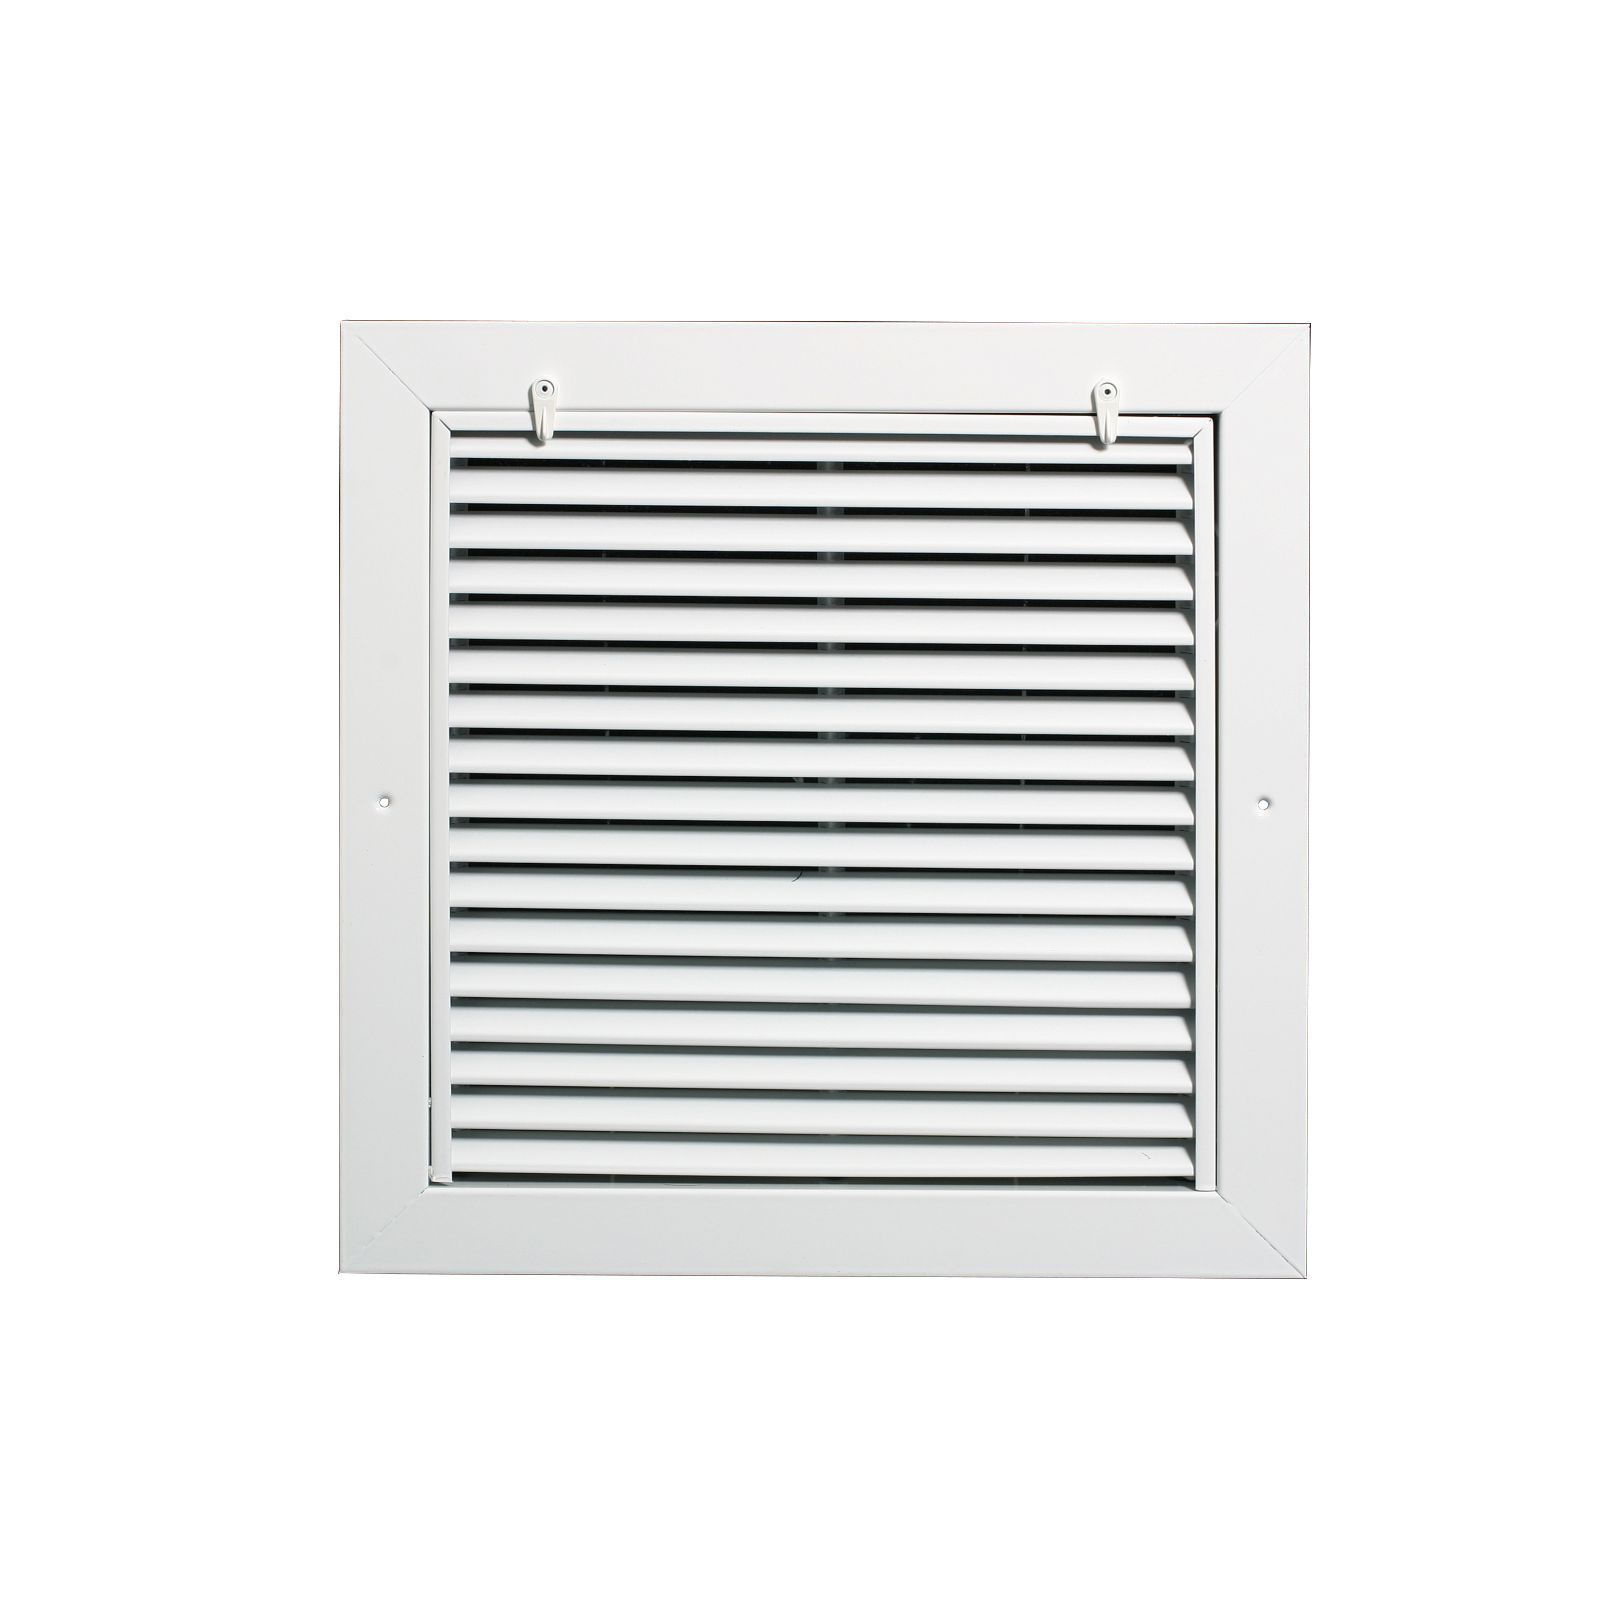 "Grille Tech RAFGS0808 - Aluminum Return Air Filter Grille, Grille Size 8"" X 8"" White"